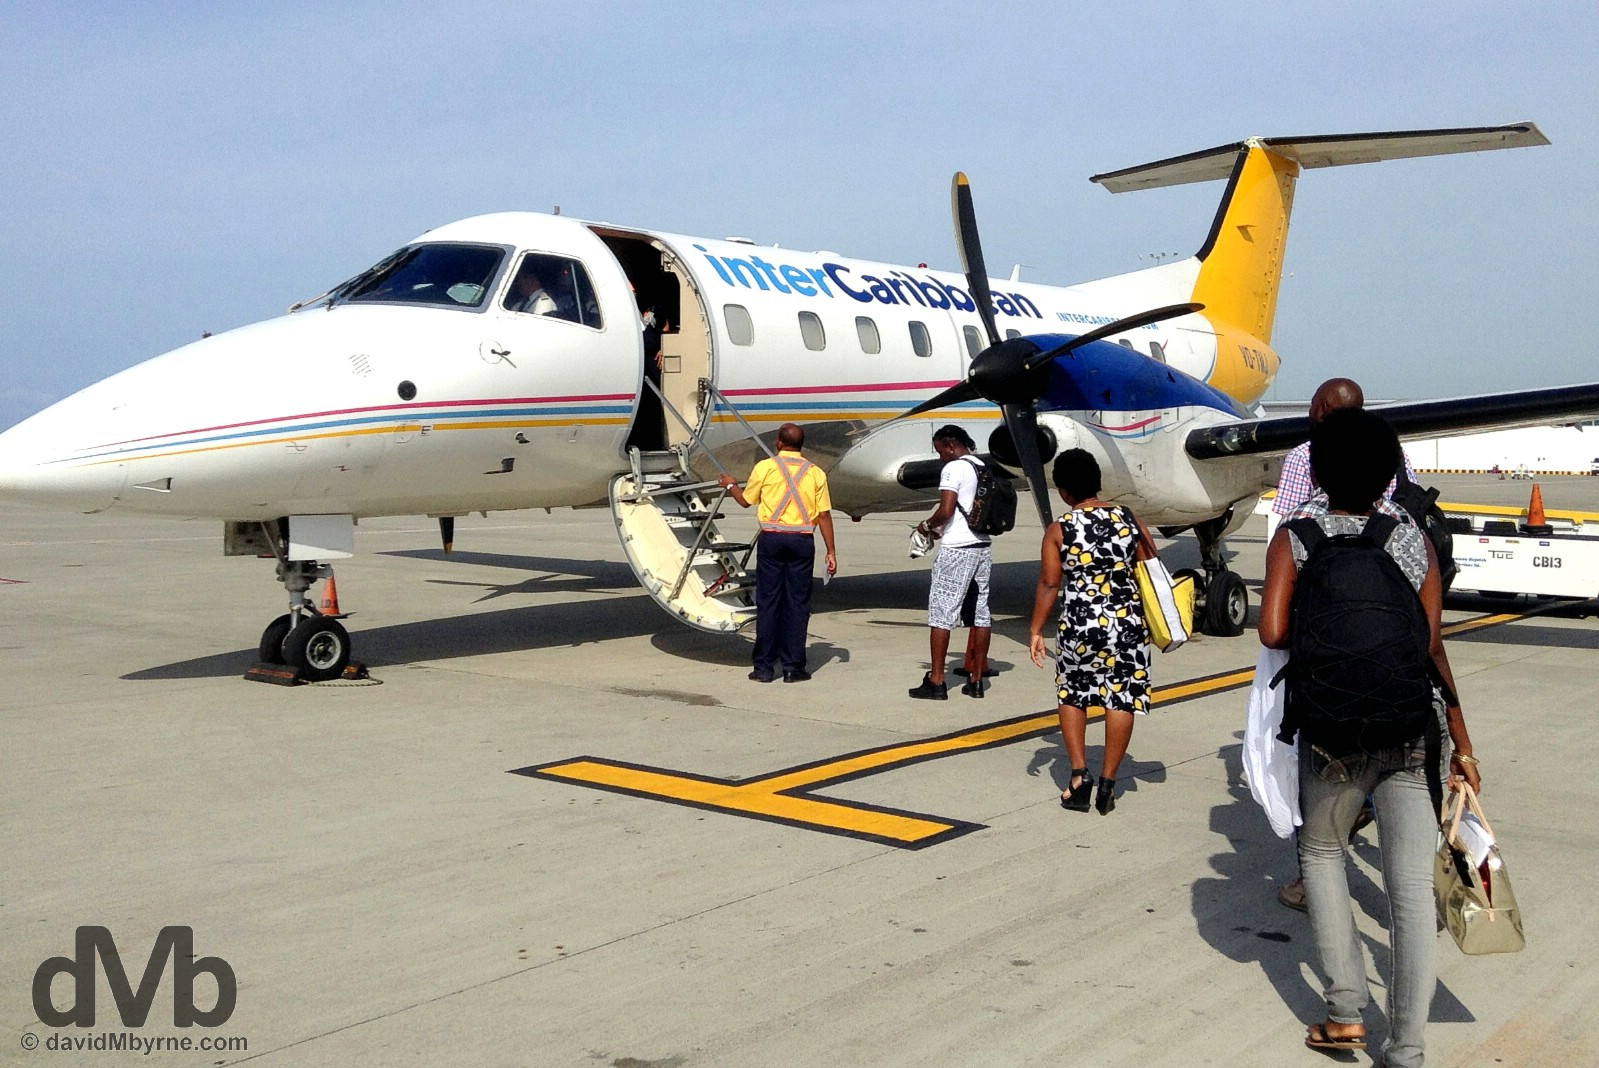 InterCaribbean flight JY623 to Port-Au-Prince, Haiti, on the runway of Norman Manley International Airport, Kingston, Jamaica. May 16, 2015.